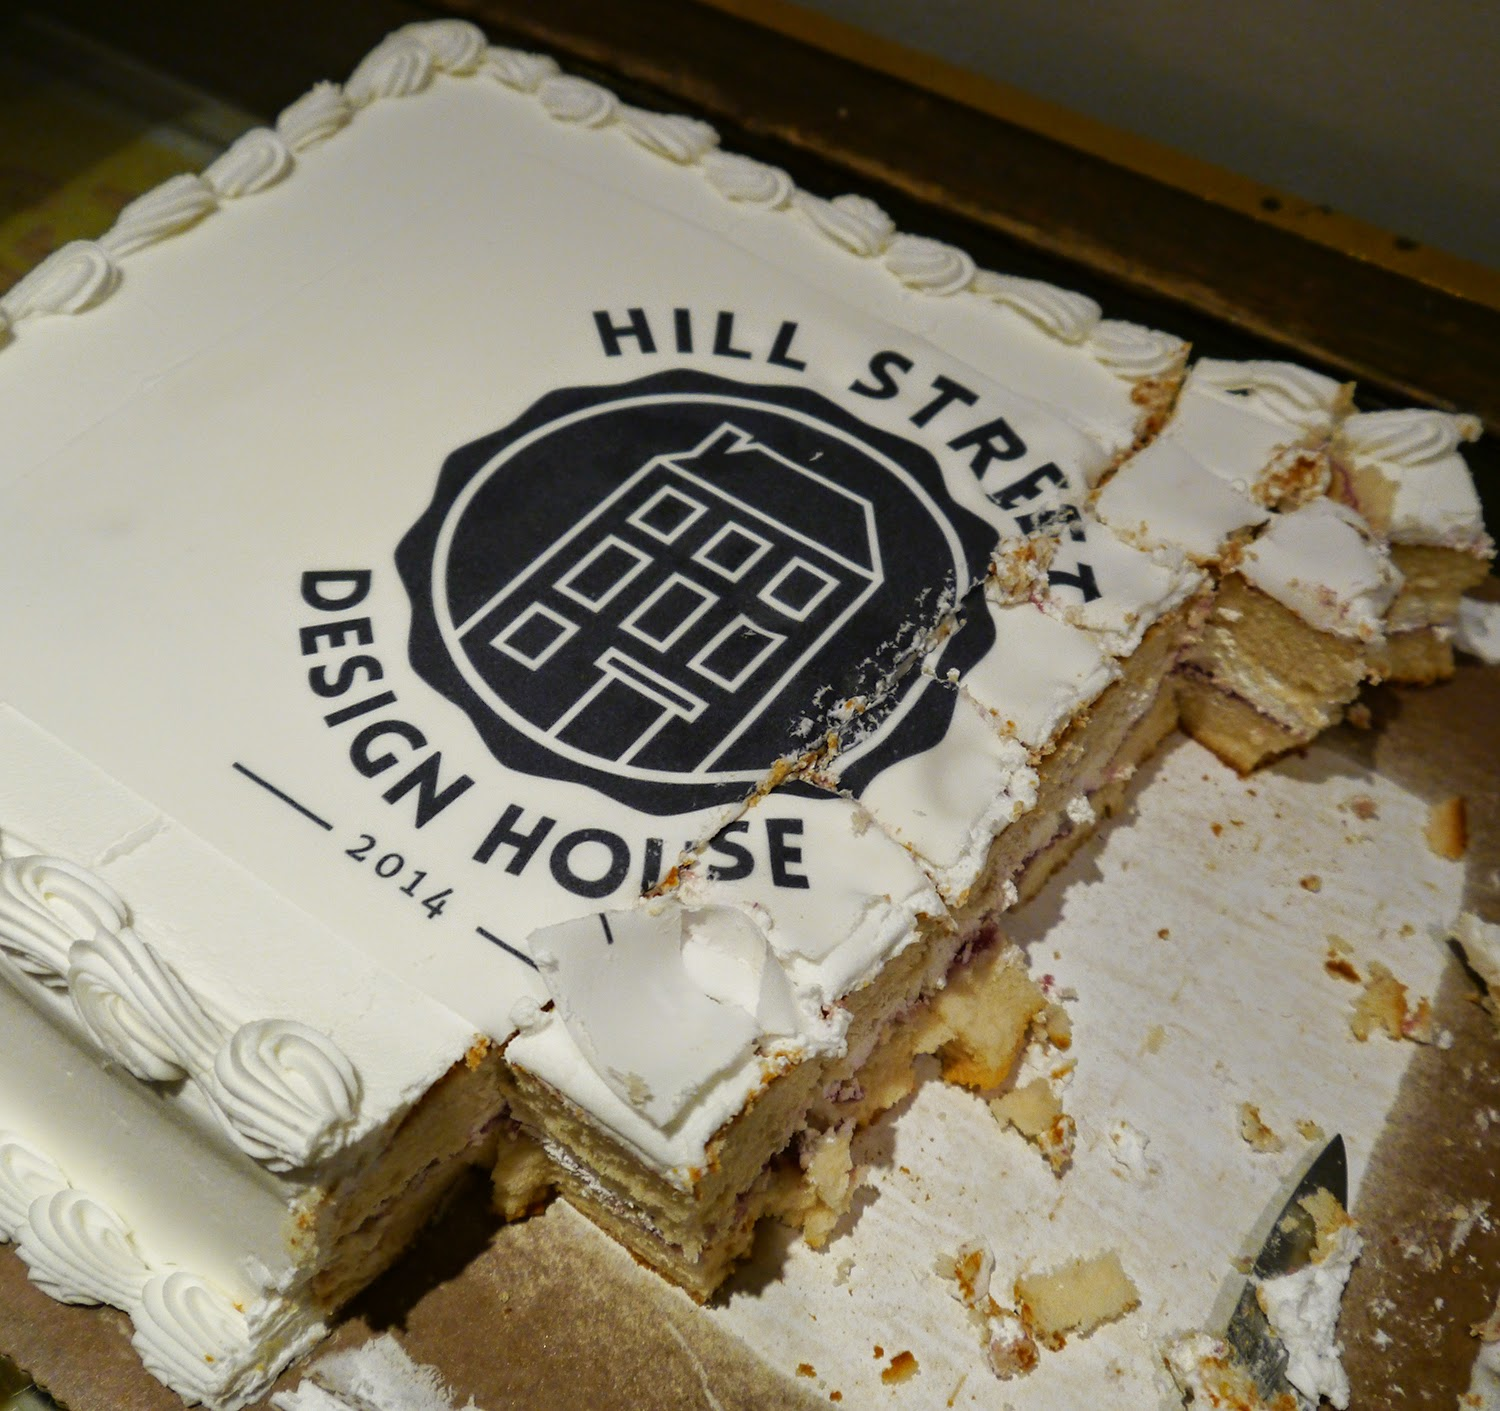 Hill Street Design Studio, design studio, artist studio, Edinburgh, launch night, event, Scottish Bloggers, Edinburgh Bloggers, Scottish Design, Scottish Designers, cake, celebration, branded cake